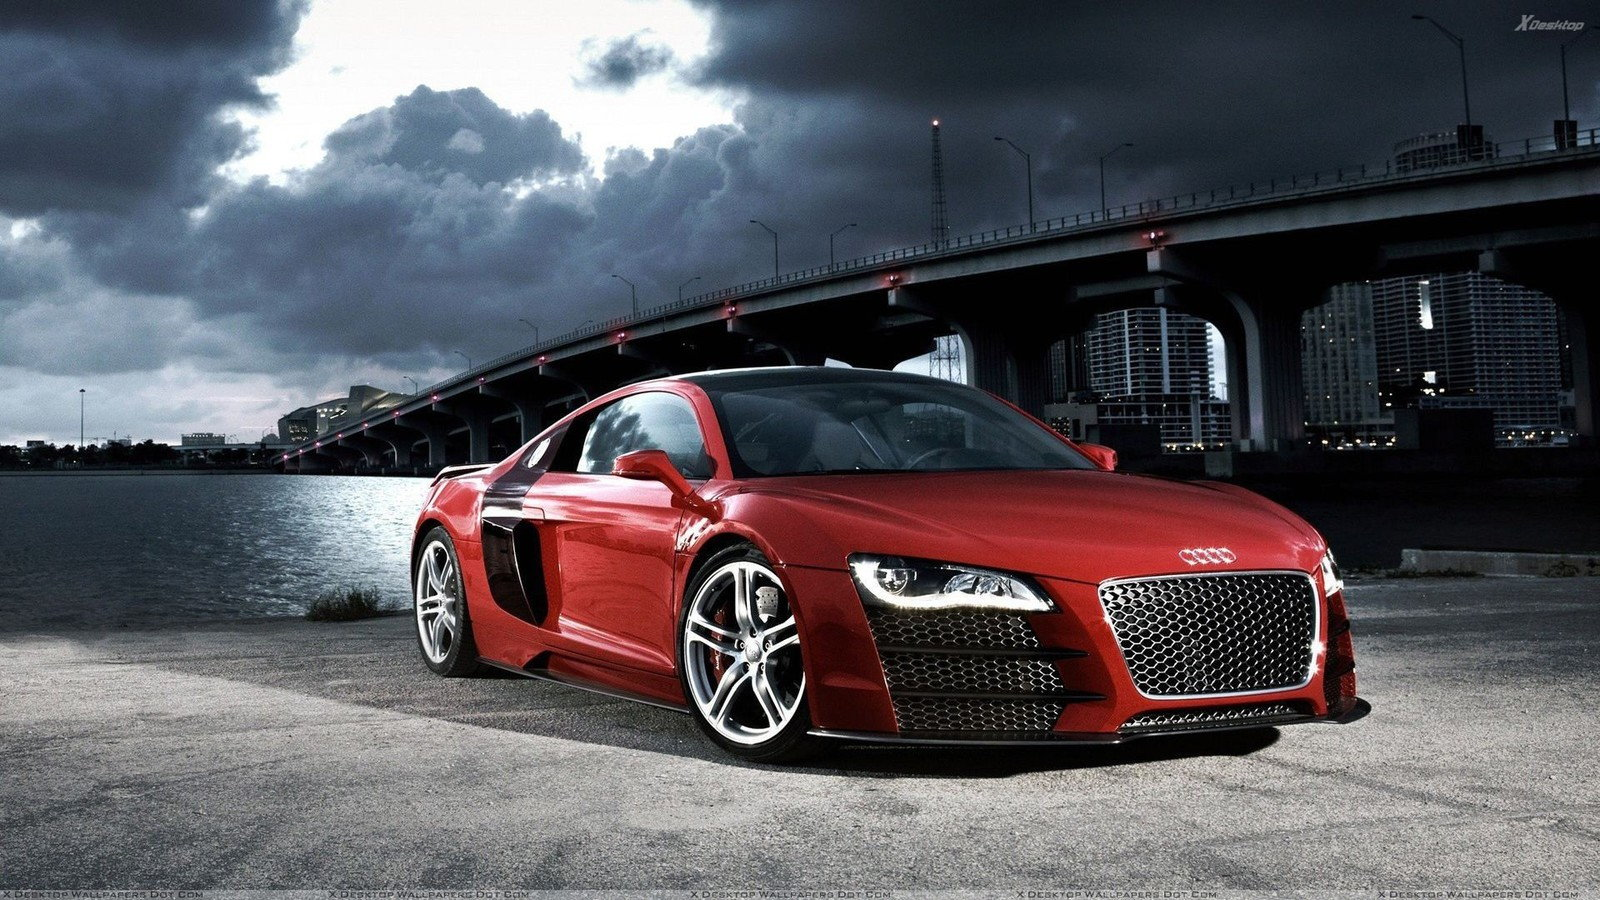 Reasons R8 is One of the Best Supercars Ever | Audiworld